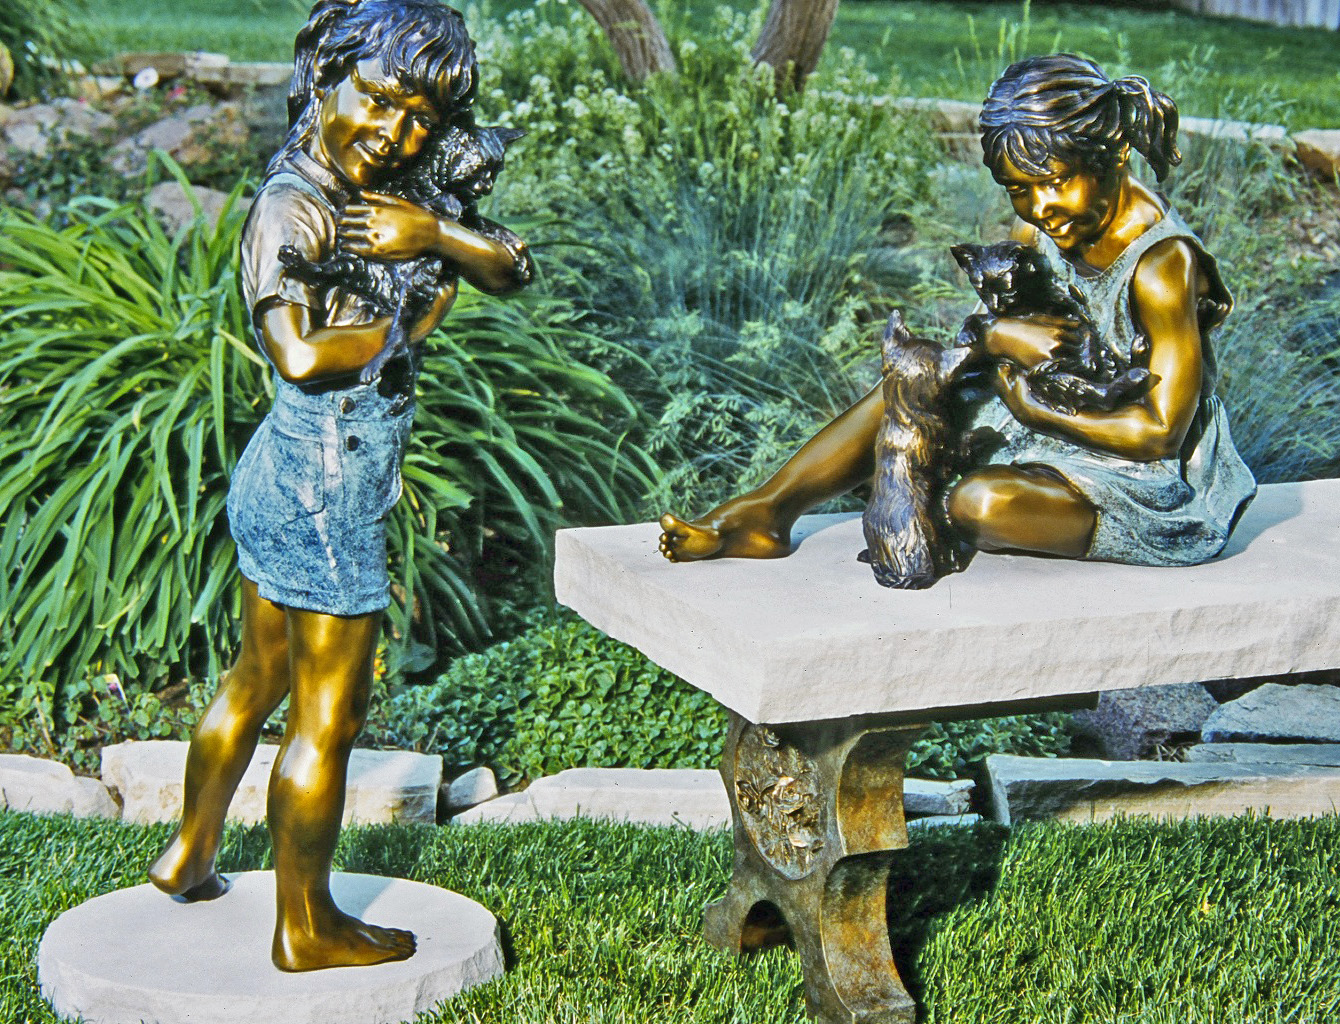 Hugs n Kittens bronze sculpture by Colorado artist Greg Todd